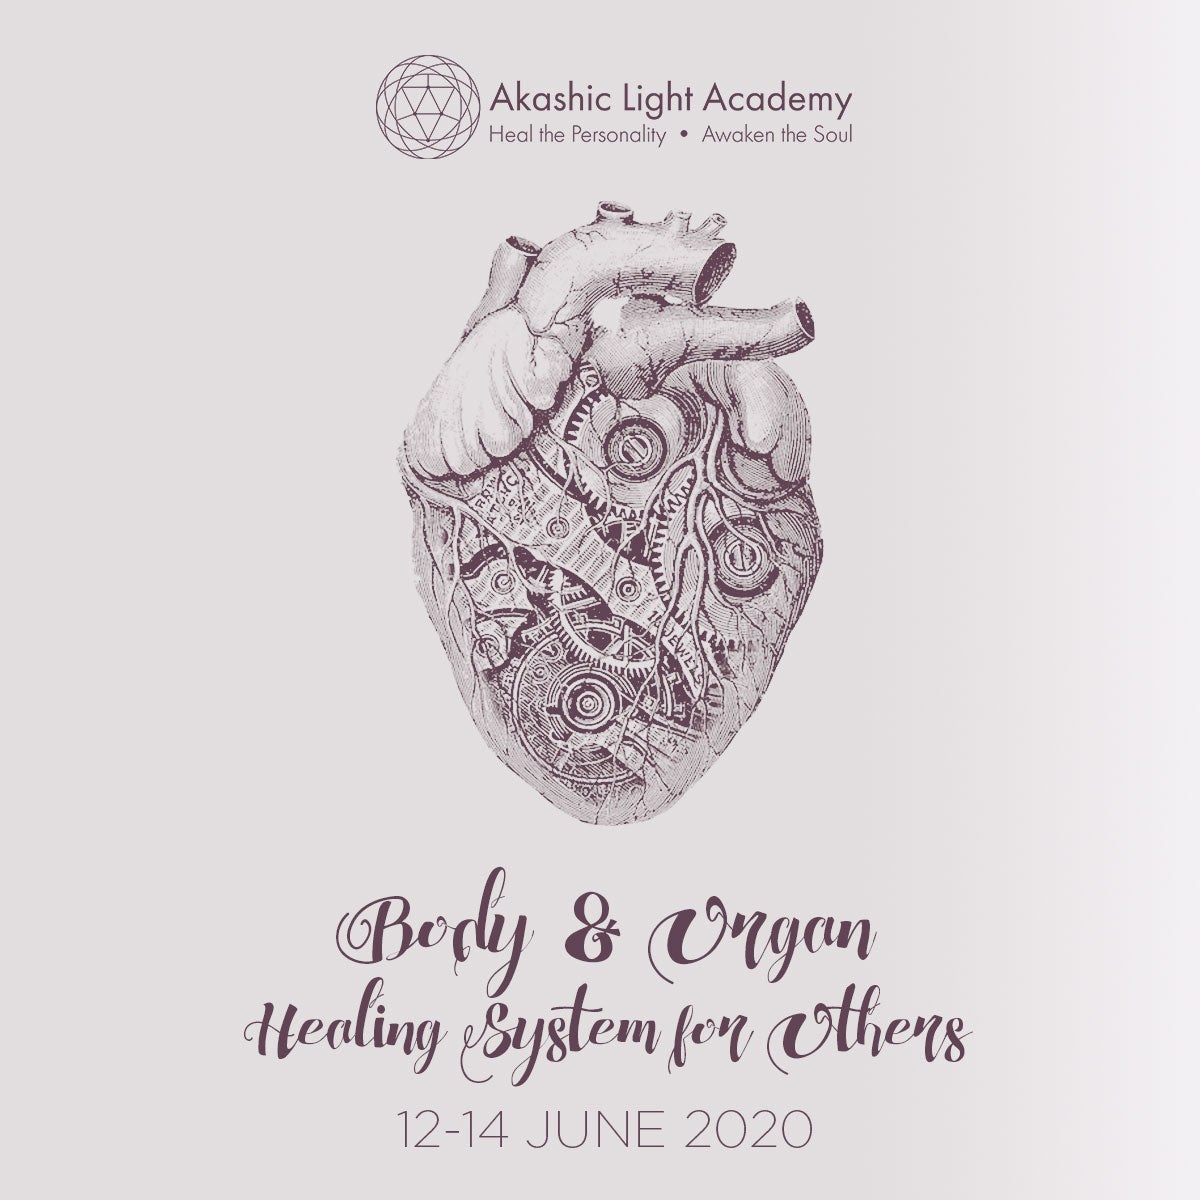 Body & Organ Healing System For Others